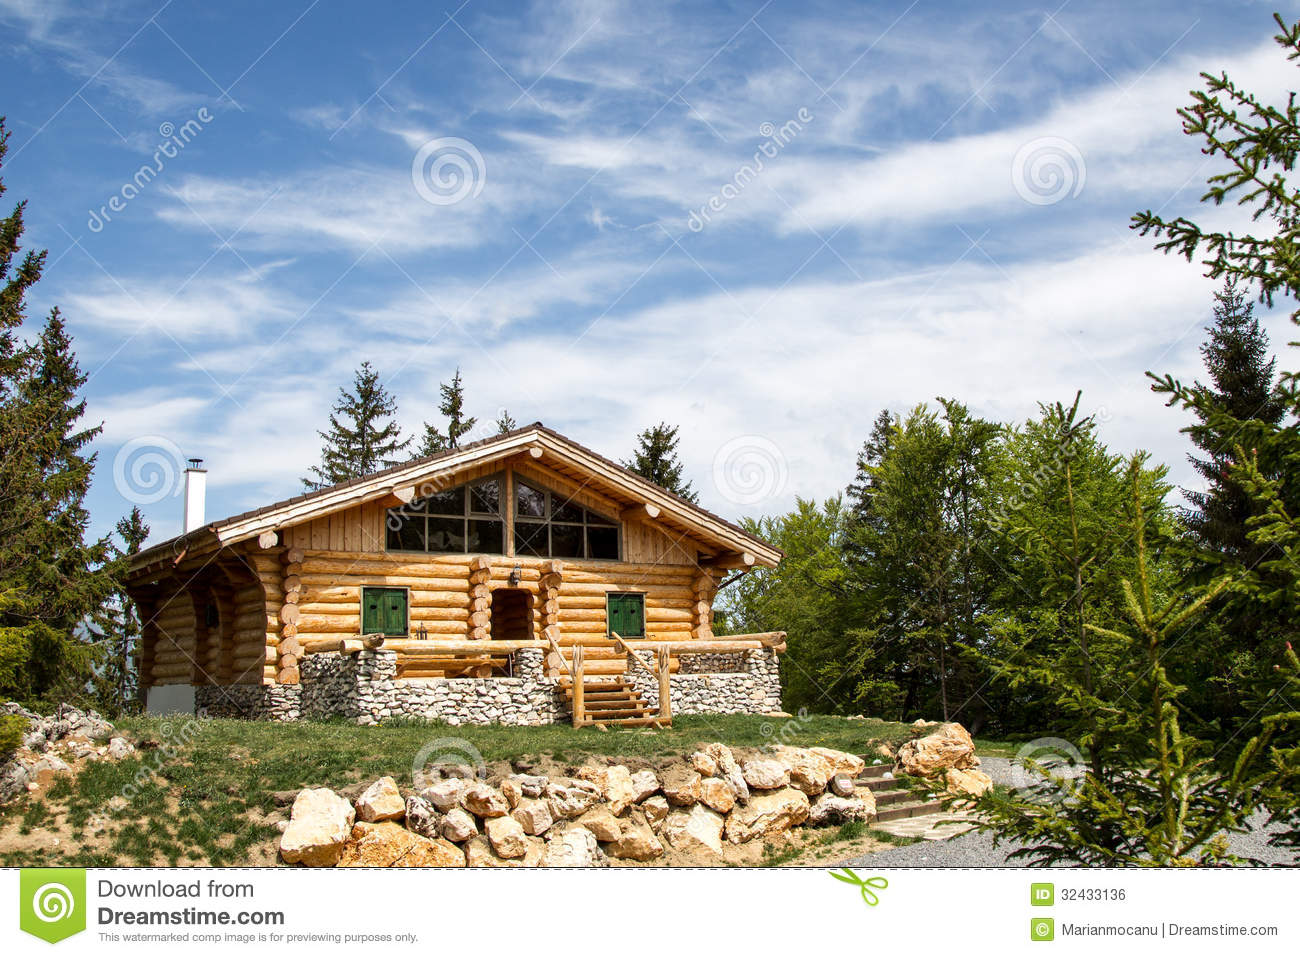 wooden hut near mountain - photo #12